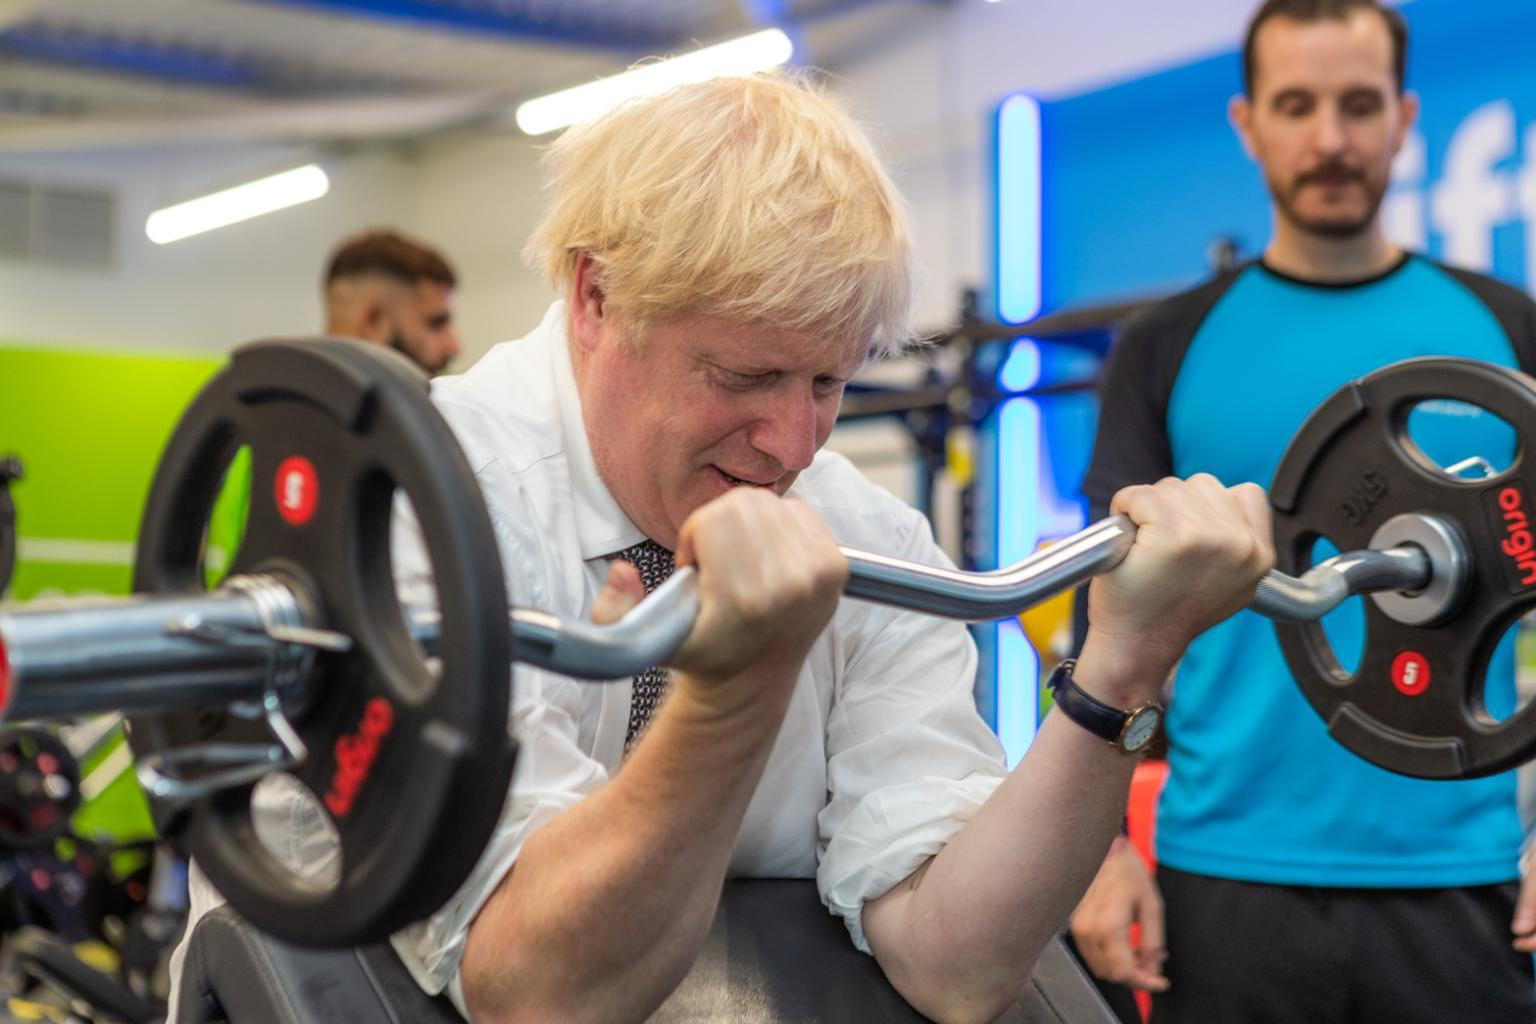 Johnson's appearance on a gym floor is in keeping with his new-found determination to tackle the UK's obesity crisis / Barney Harrison/LinkedIn/The Gym Group